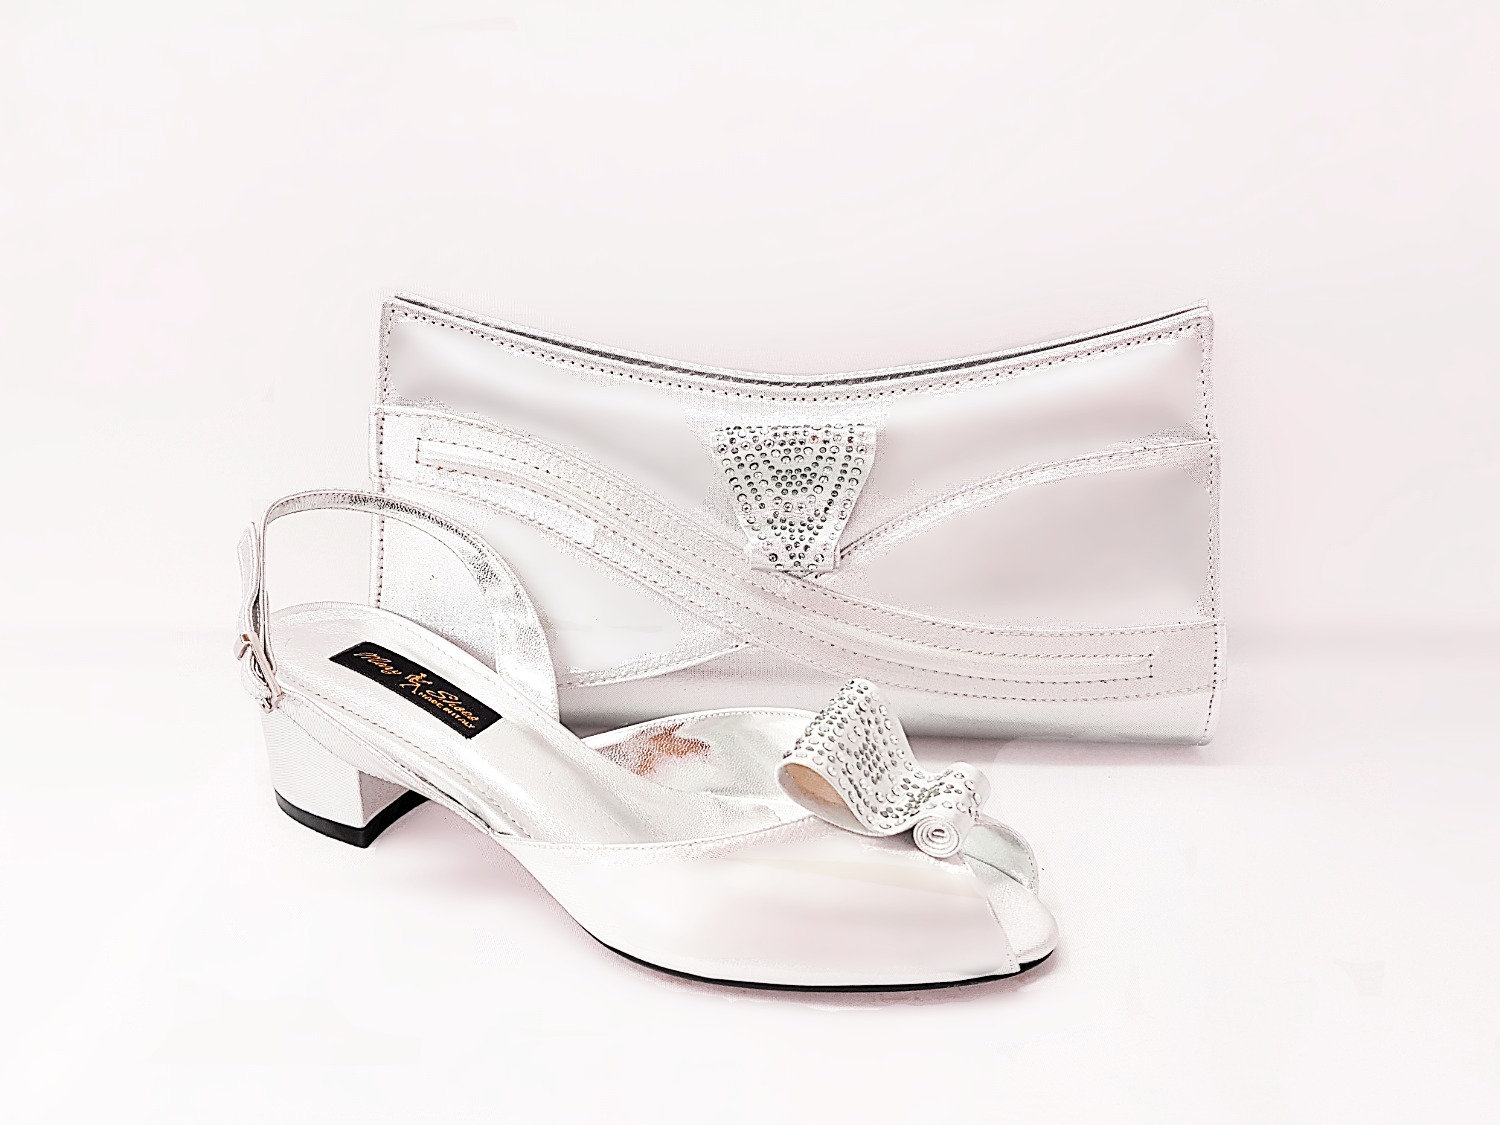 561ac2c28 A Mary Shoes signature style, these beautifully crafted low heel wedding  shoes feature a distinctive stone embellished bow, a chunky heel and a  slingback ...